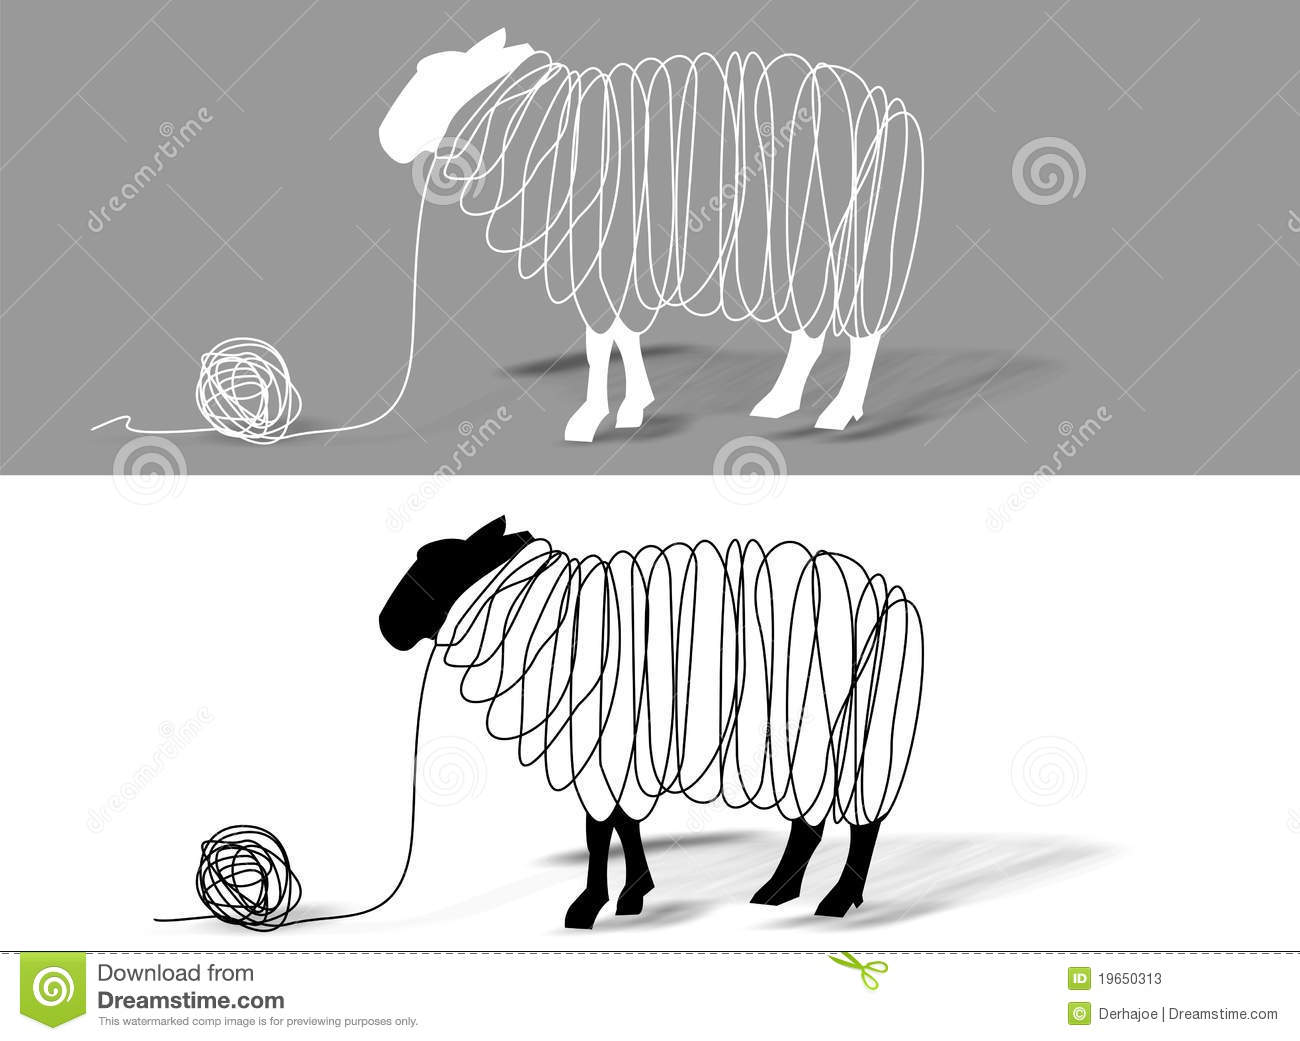 Knitting Sheep Clipart : Sheep wool stock illustration image of shadowy